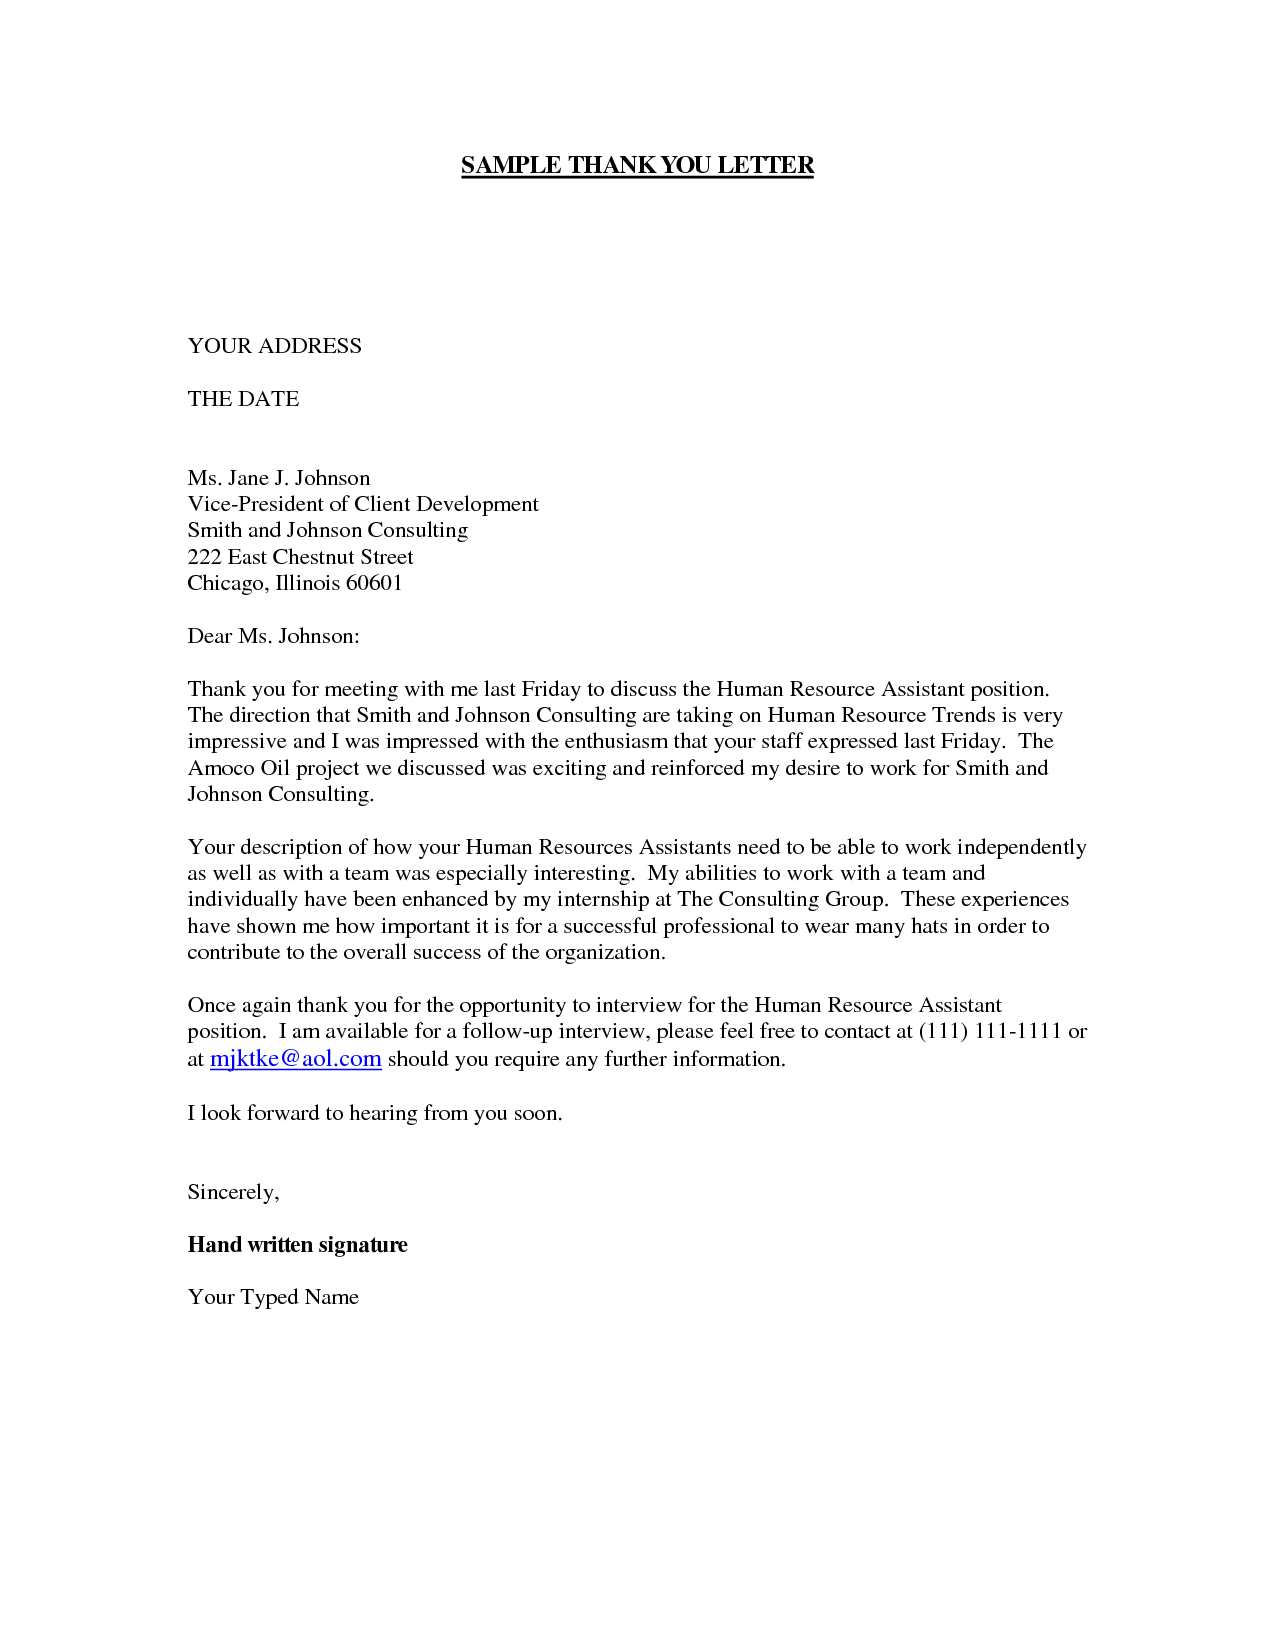 Personal Thank You Letter | Crna Cover Letter